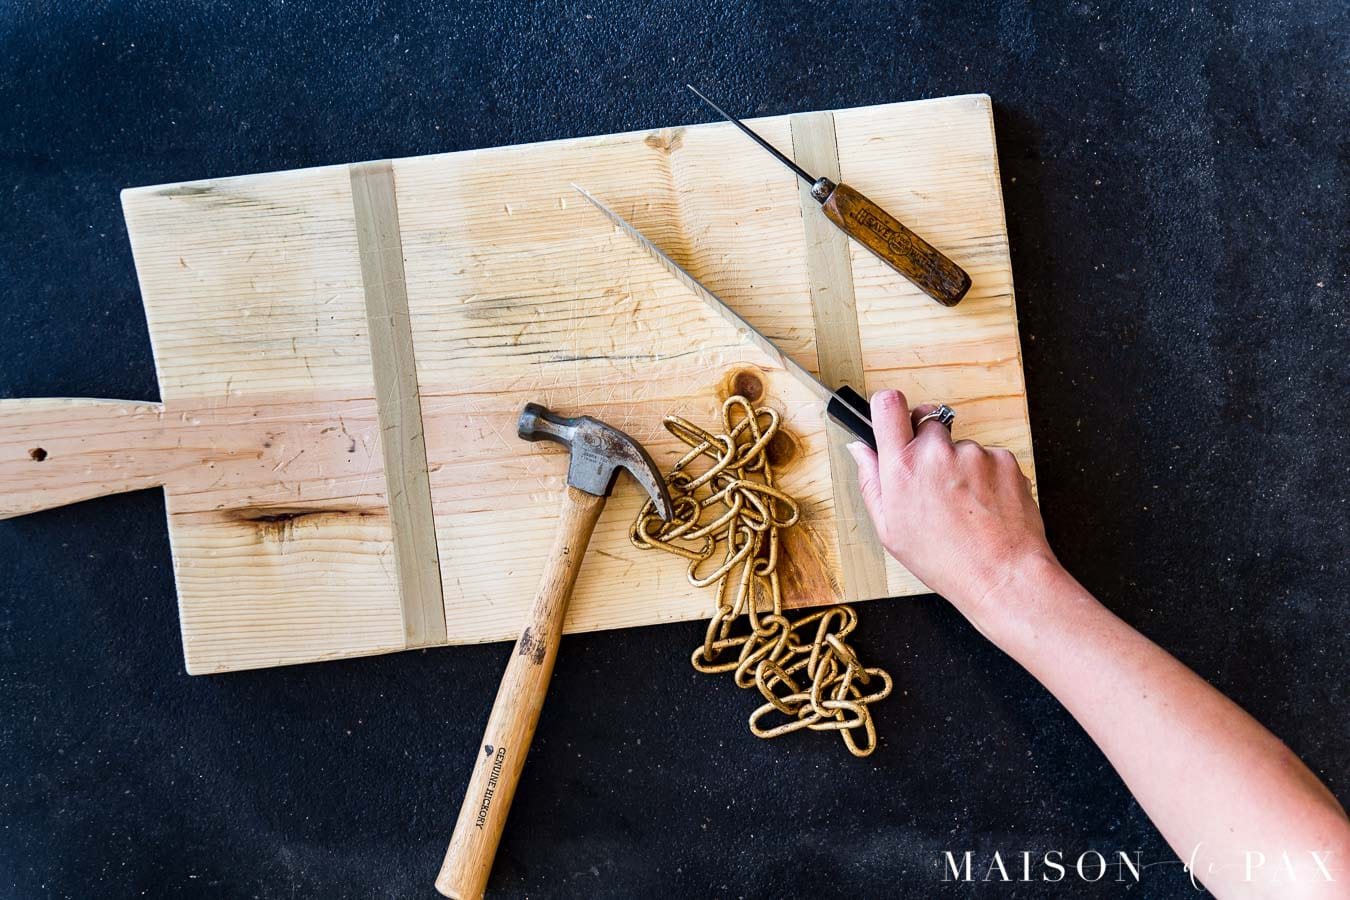 distressing wood serving board for authentic aged look | Maison de Pax